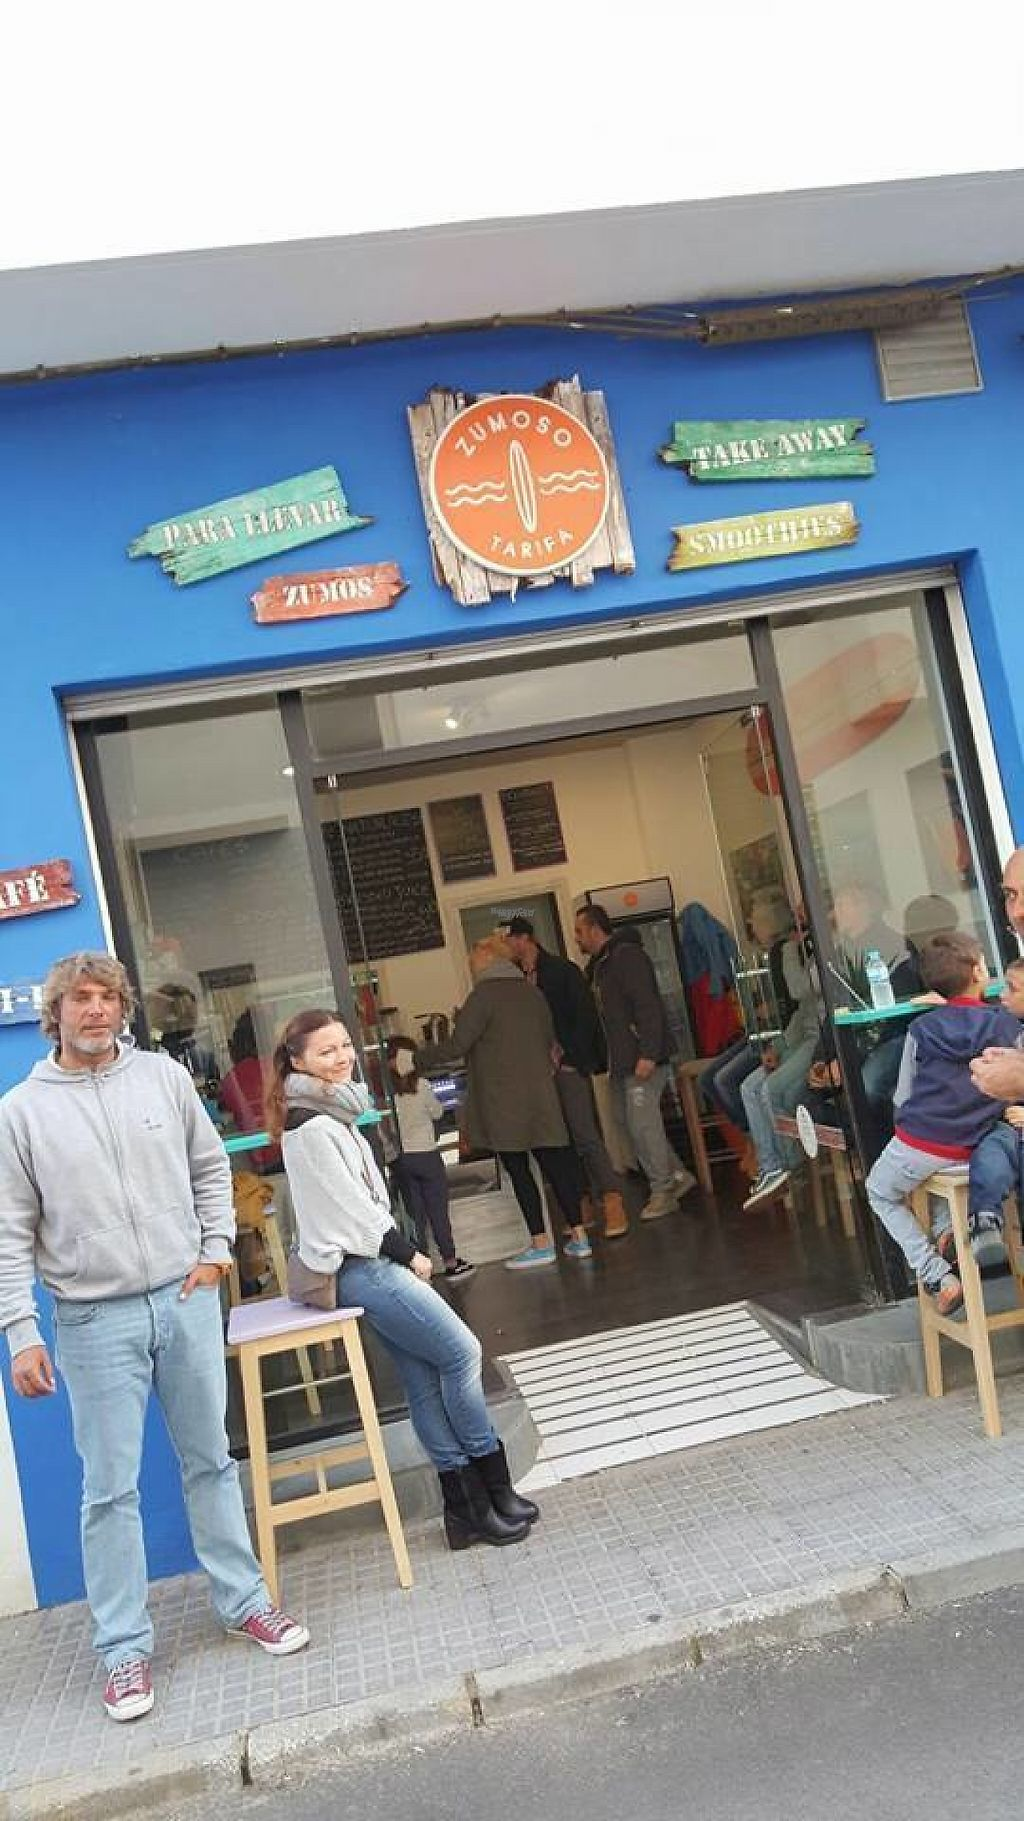 """Photo of Zumoso Bar Tarifa  by <a href=""""/members/profile/zumosotarifa"""">zumosotarifa</a> <br/>Fresh juices, creamy coffee, homemade cakes, sandwiches and salads for take away.  Calle Canovas del Castillo 4 11380 Tarifa 956 62 75 93  <br/> November 14, 2016  - <a href='/contact/abuse/image/82633/190074'>Report</a>"""